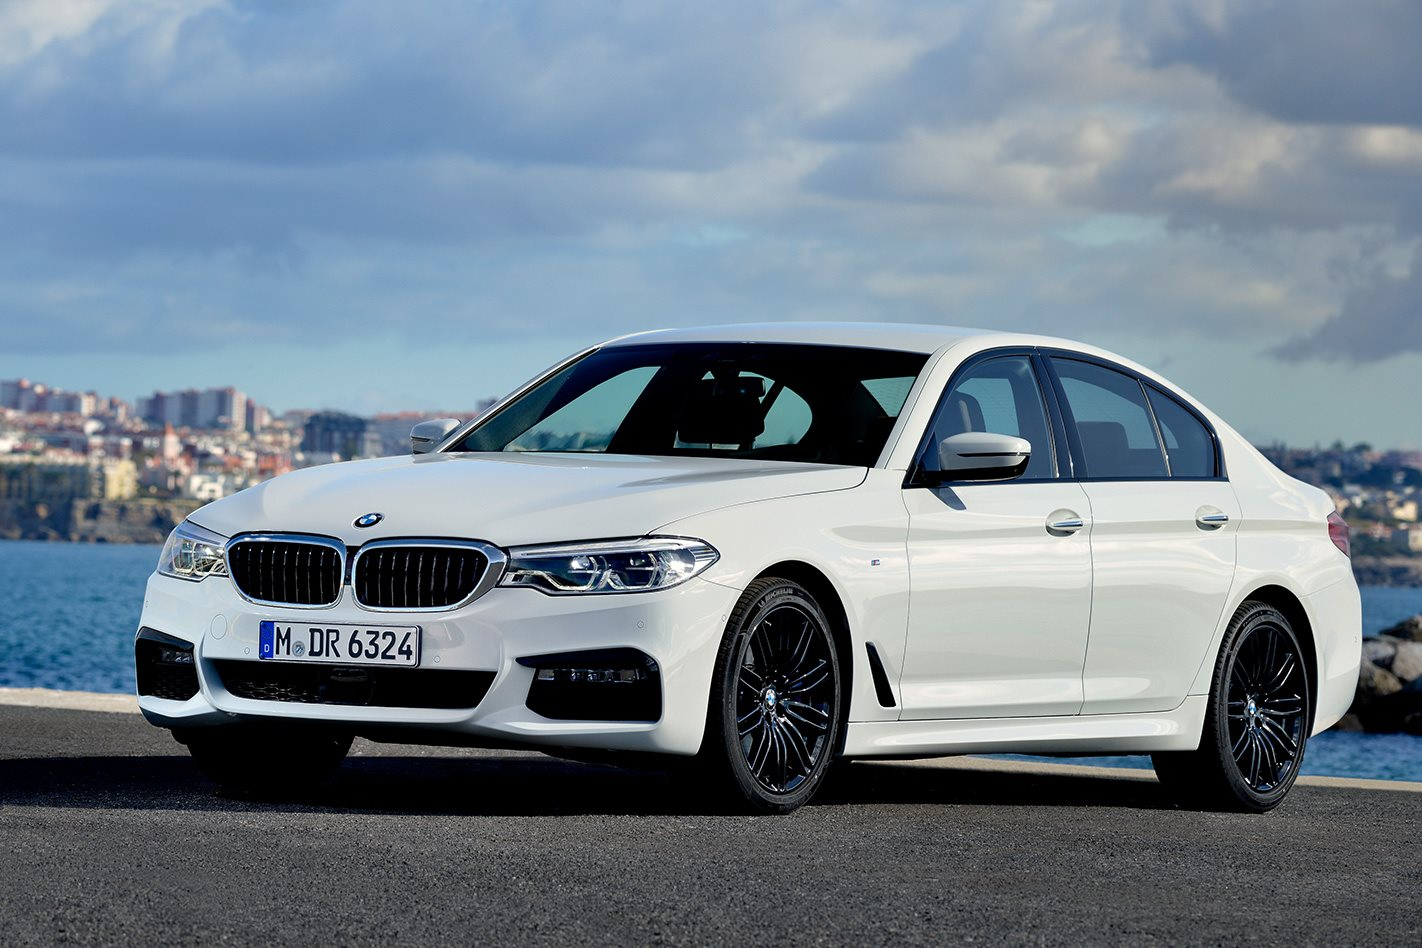 BMW 3 Series bmw 535d price 2017 BMW 5 Series pricing and specifications